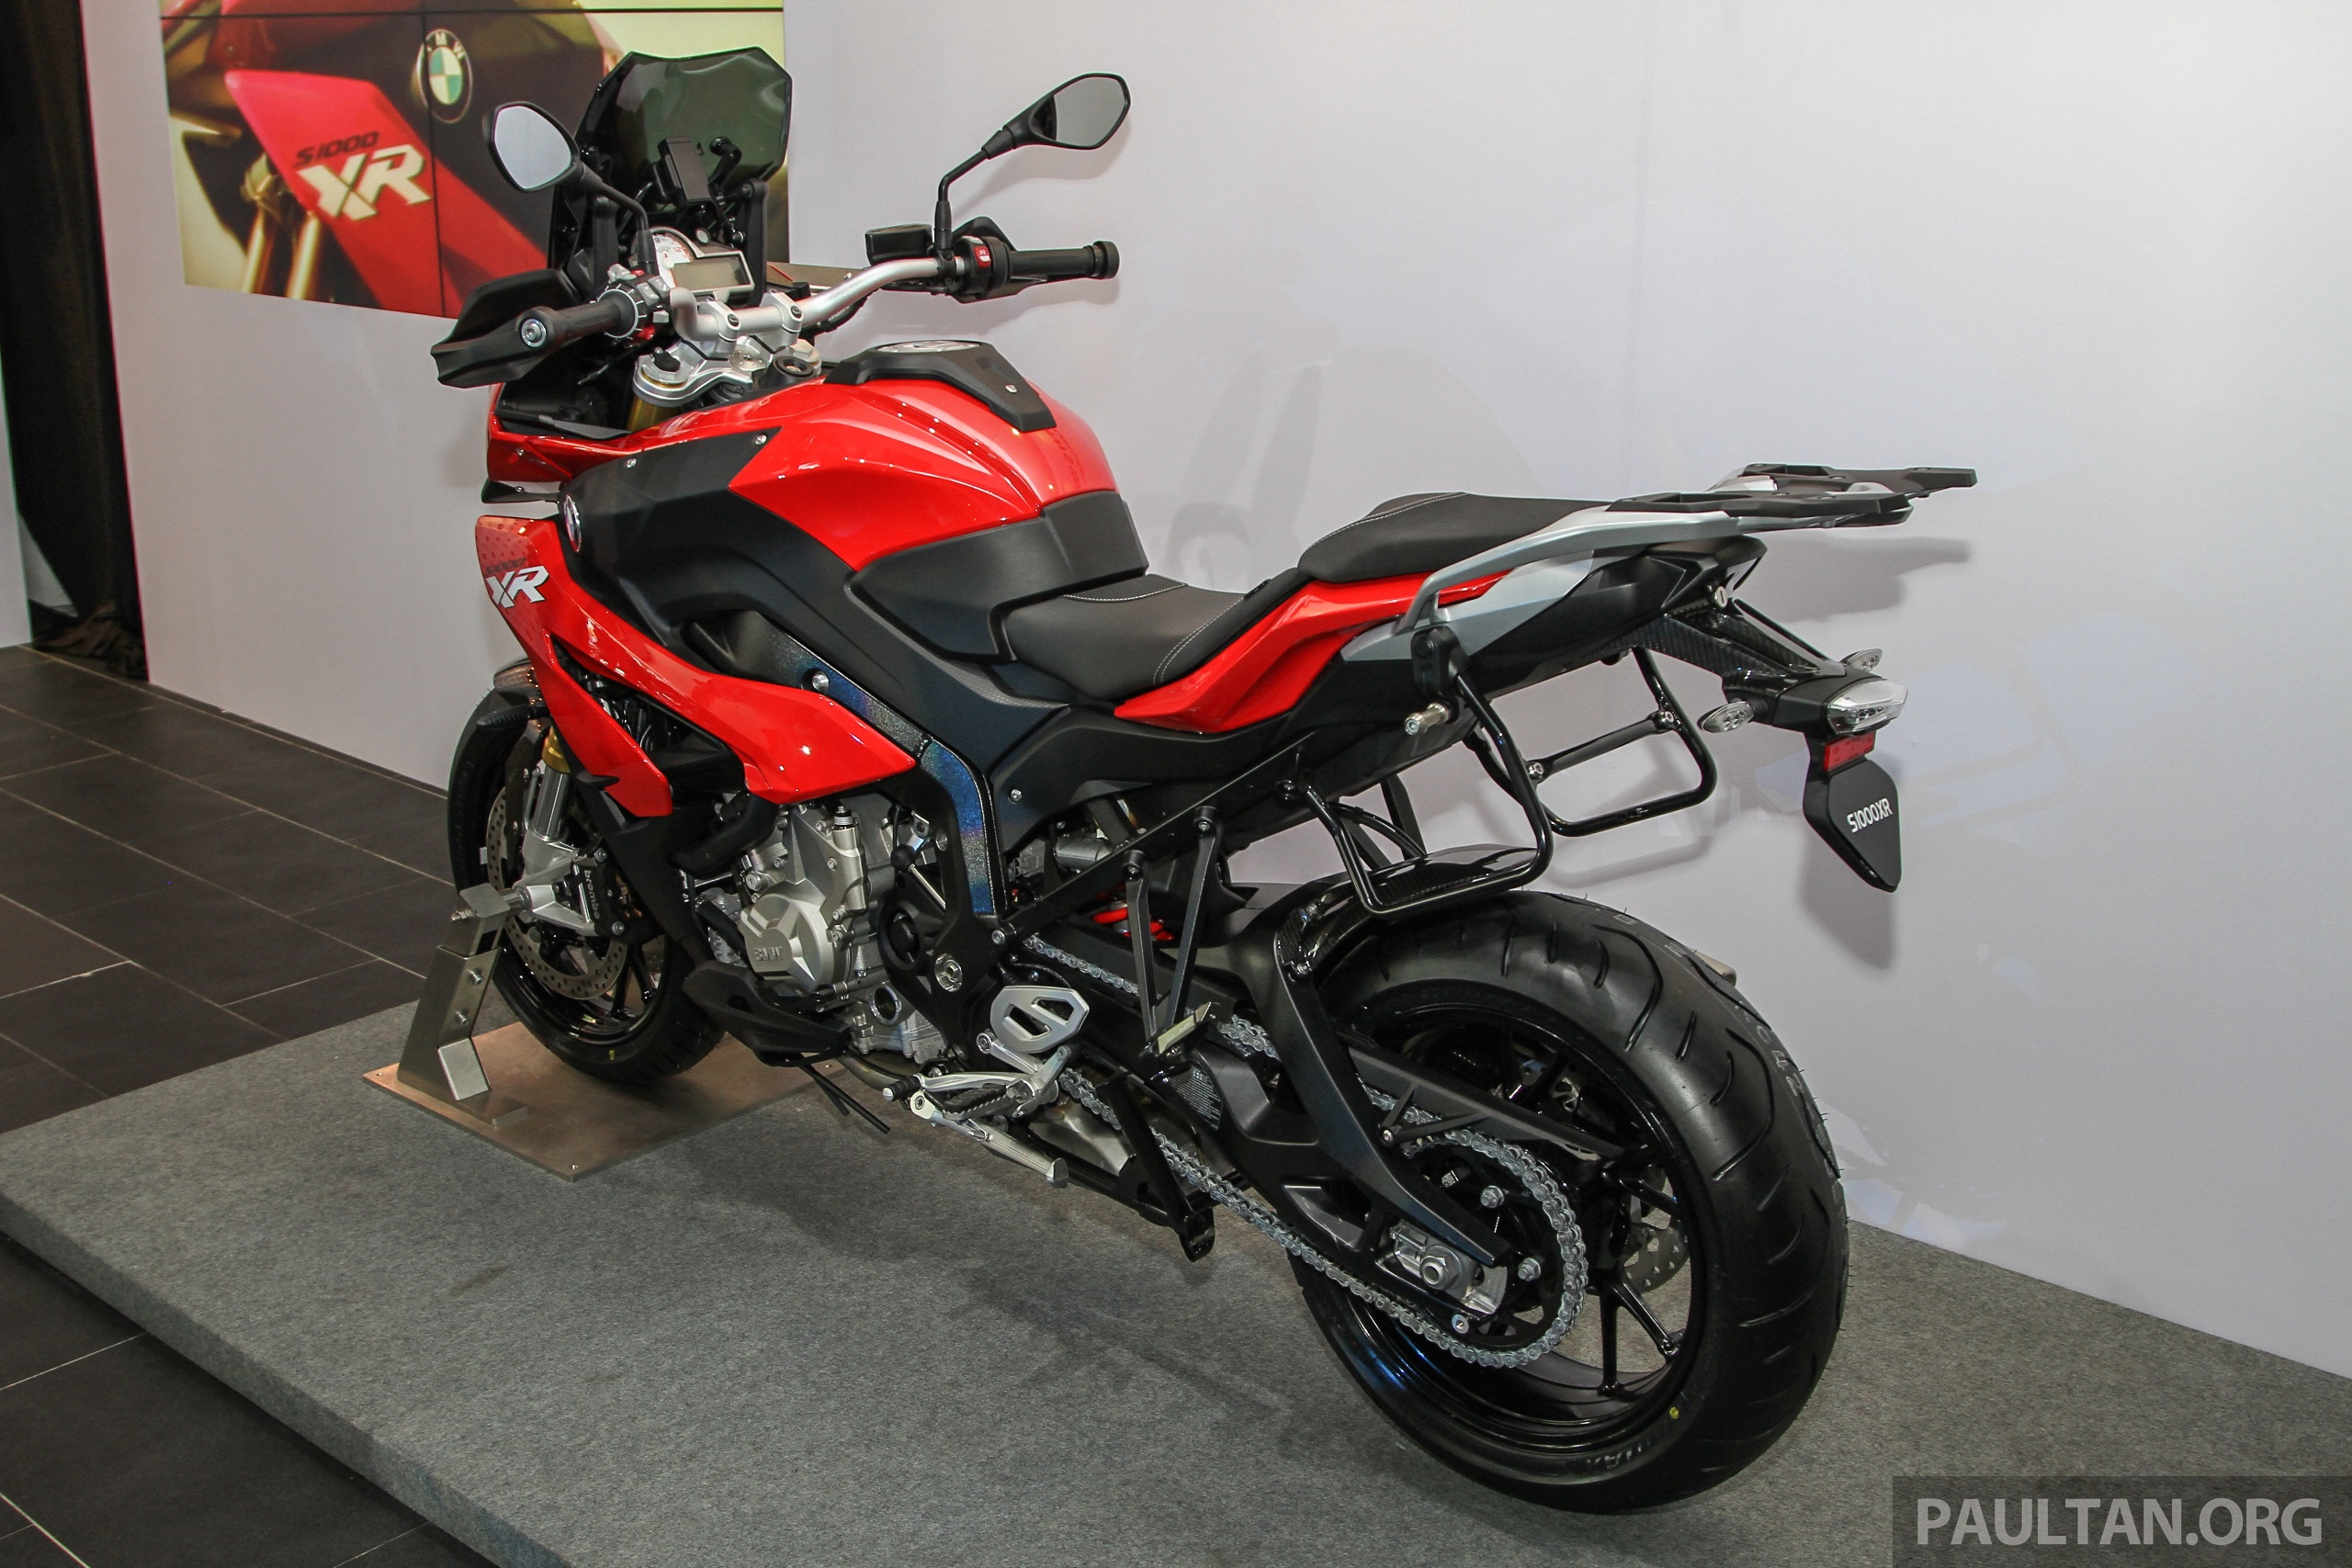 Bmw S 1000 Xr R 1200 Rs Launched From Rm102k Image 361058